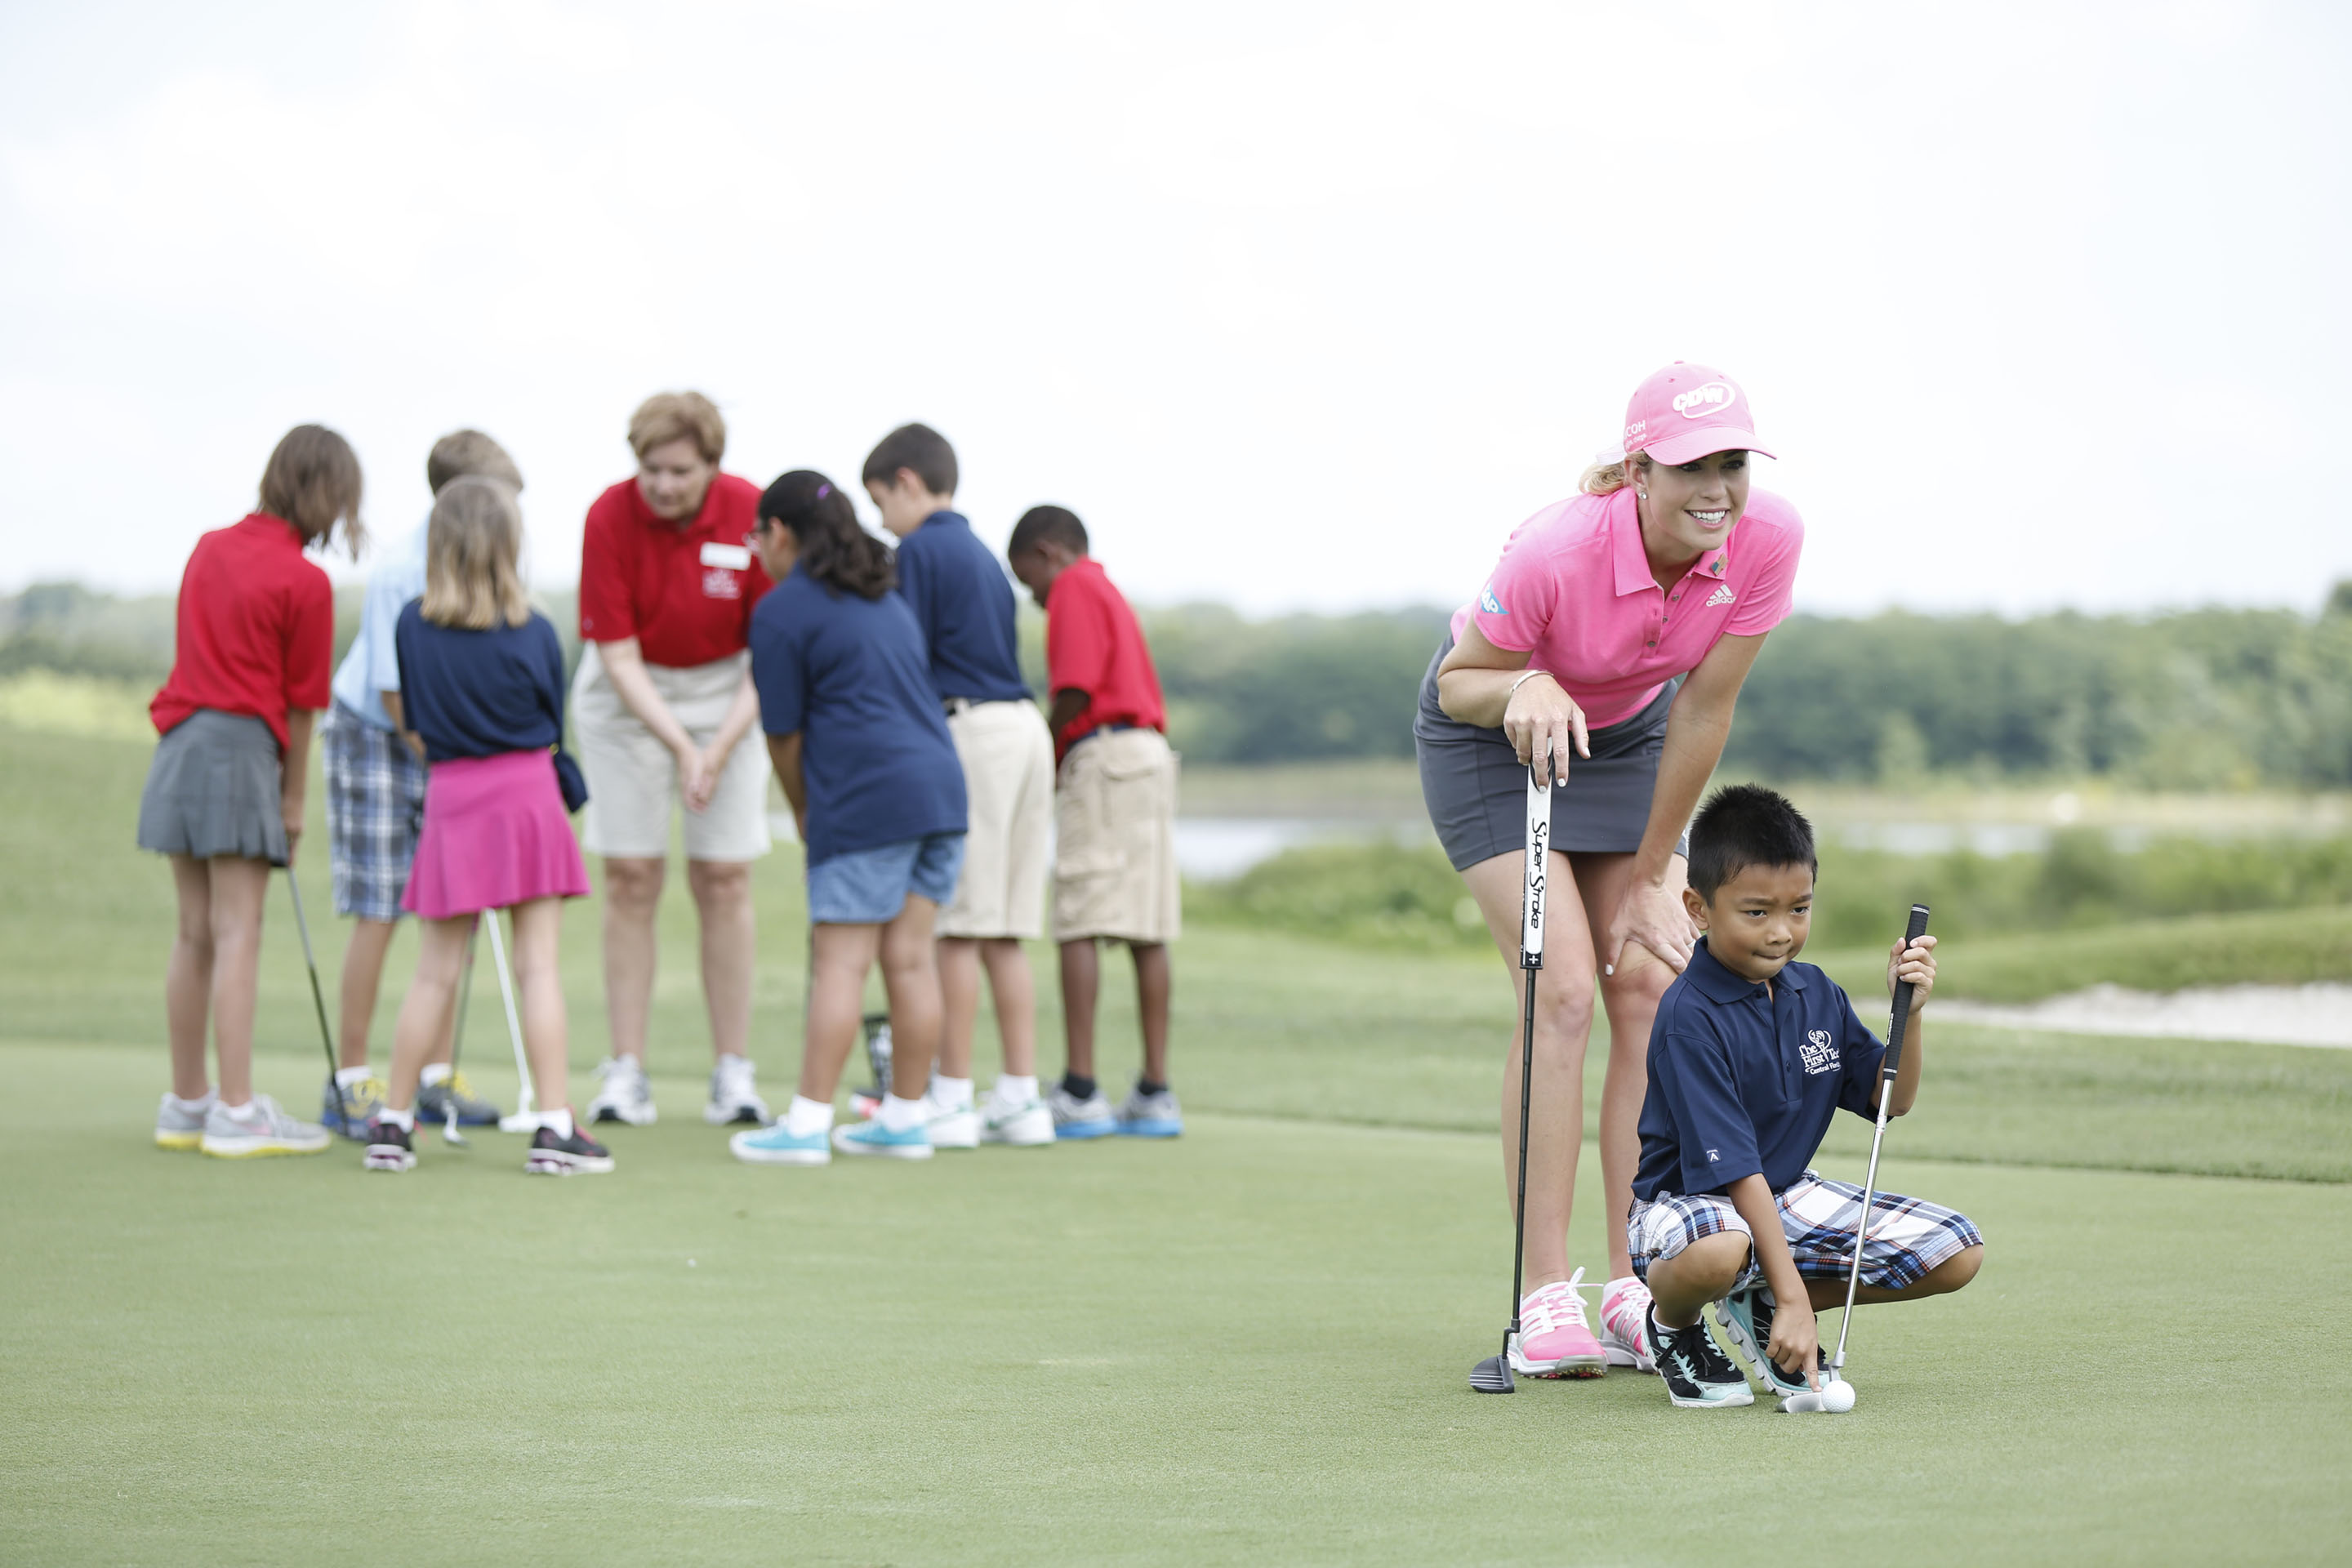 Empowering Youth Through Golf